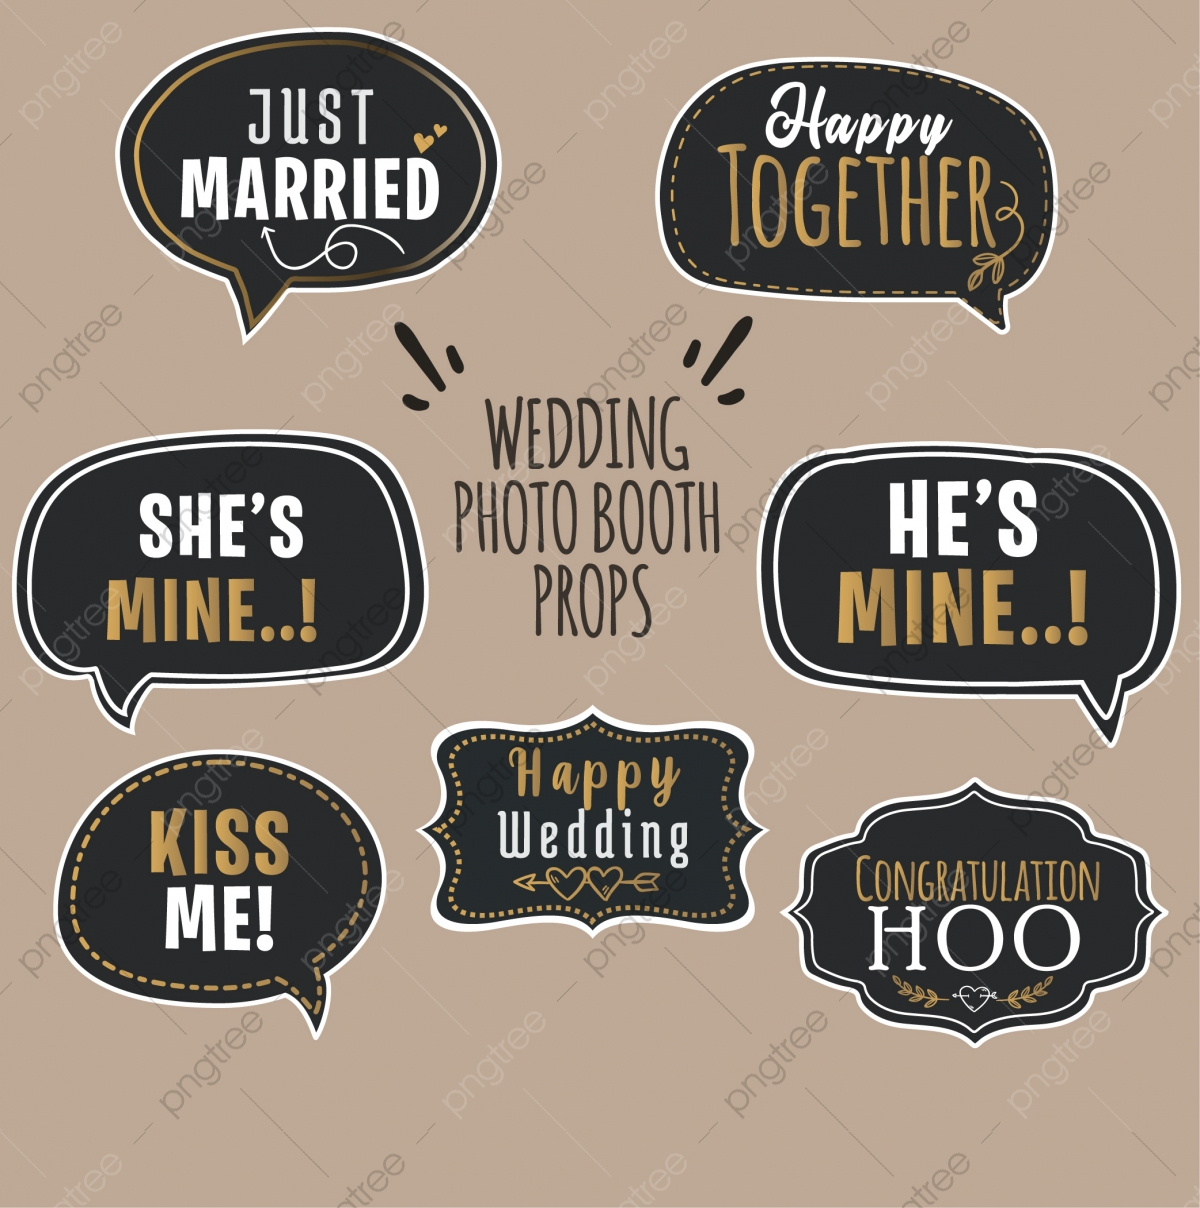 Props Photobooth Png Images Vector And Psd Files Free Download On Pngtree